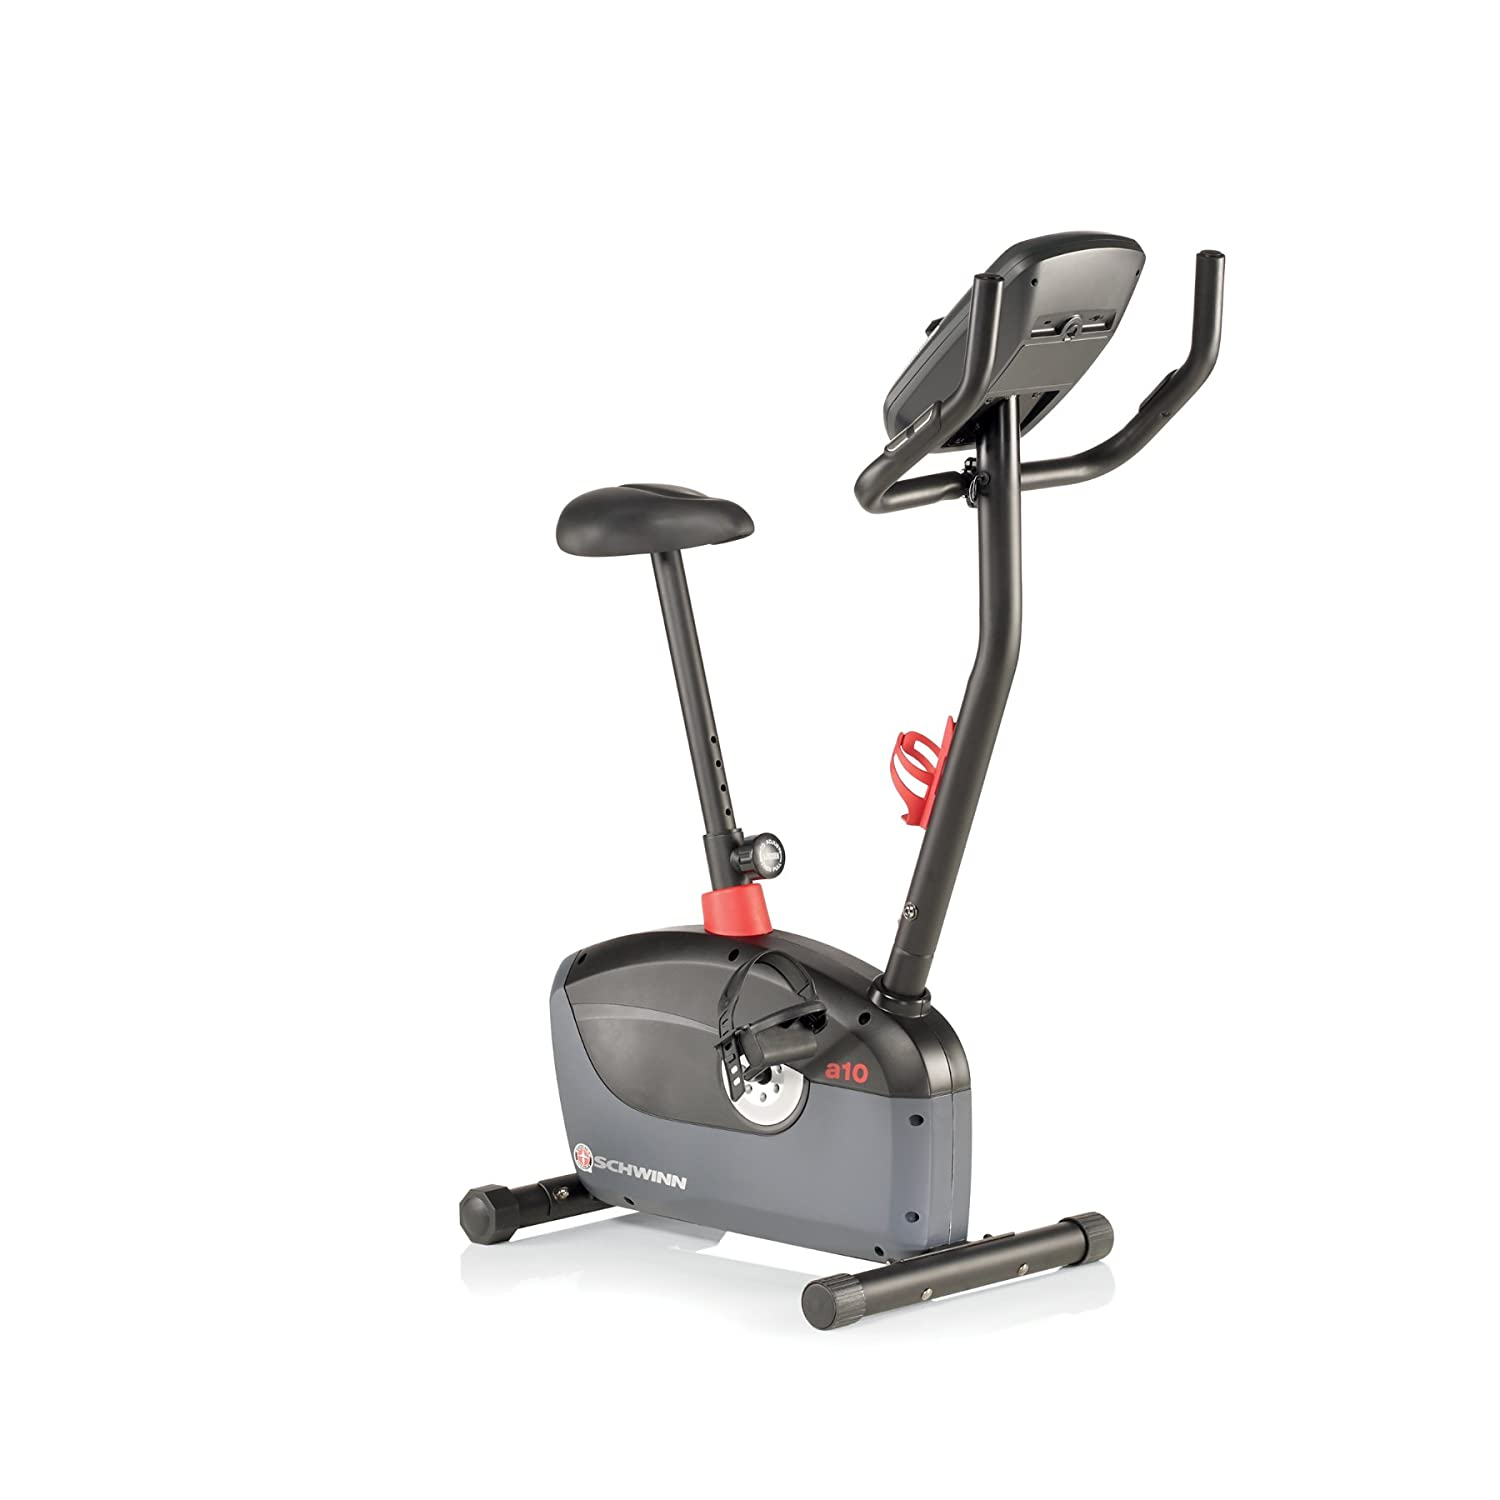 Schwinn A10 Upright Bike 2013 Exercise Bikes Amazon Canada